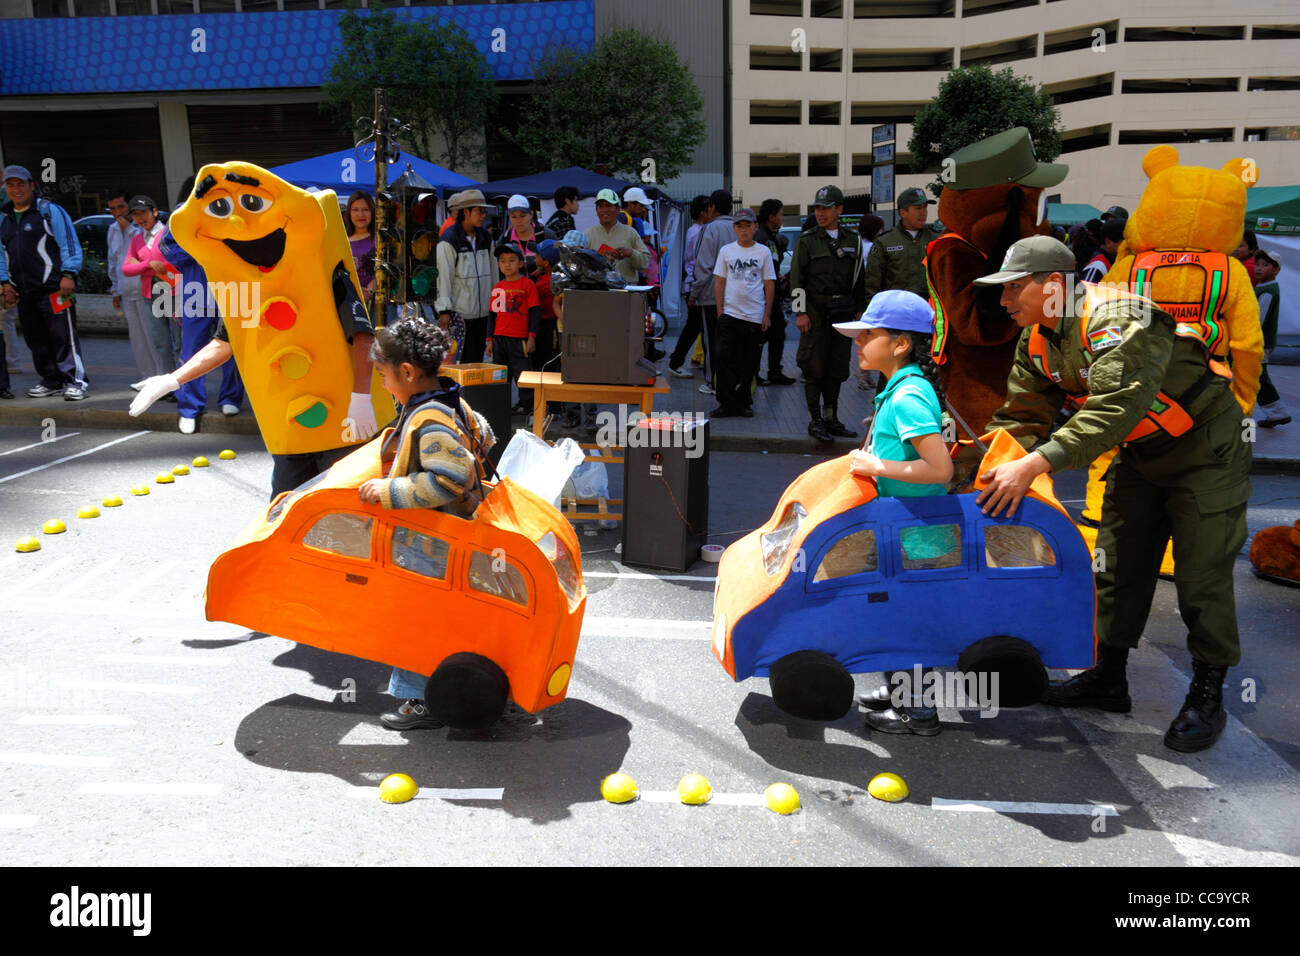 Transport police organise games in street to teach children to respect traffic controls for Pedestrian Day, La Paz, - Stock Image